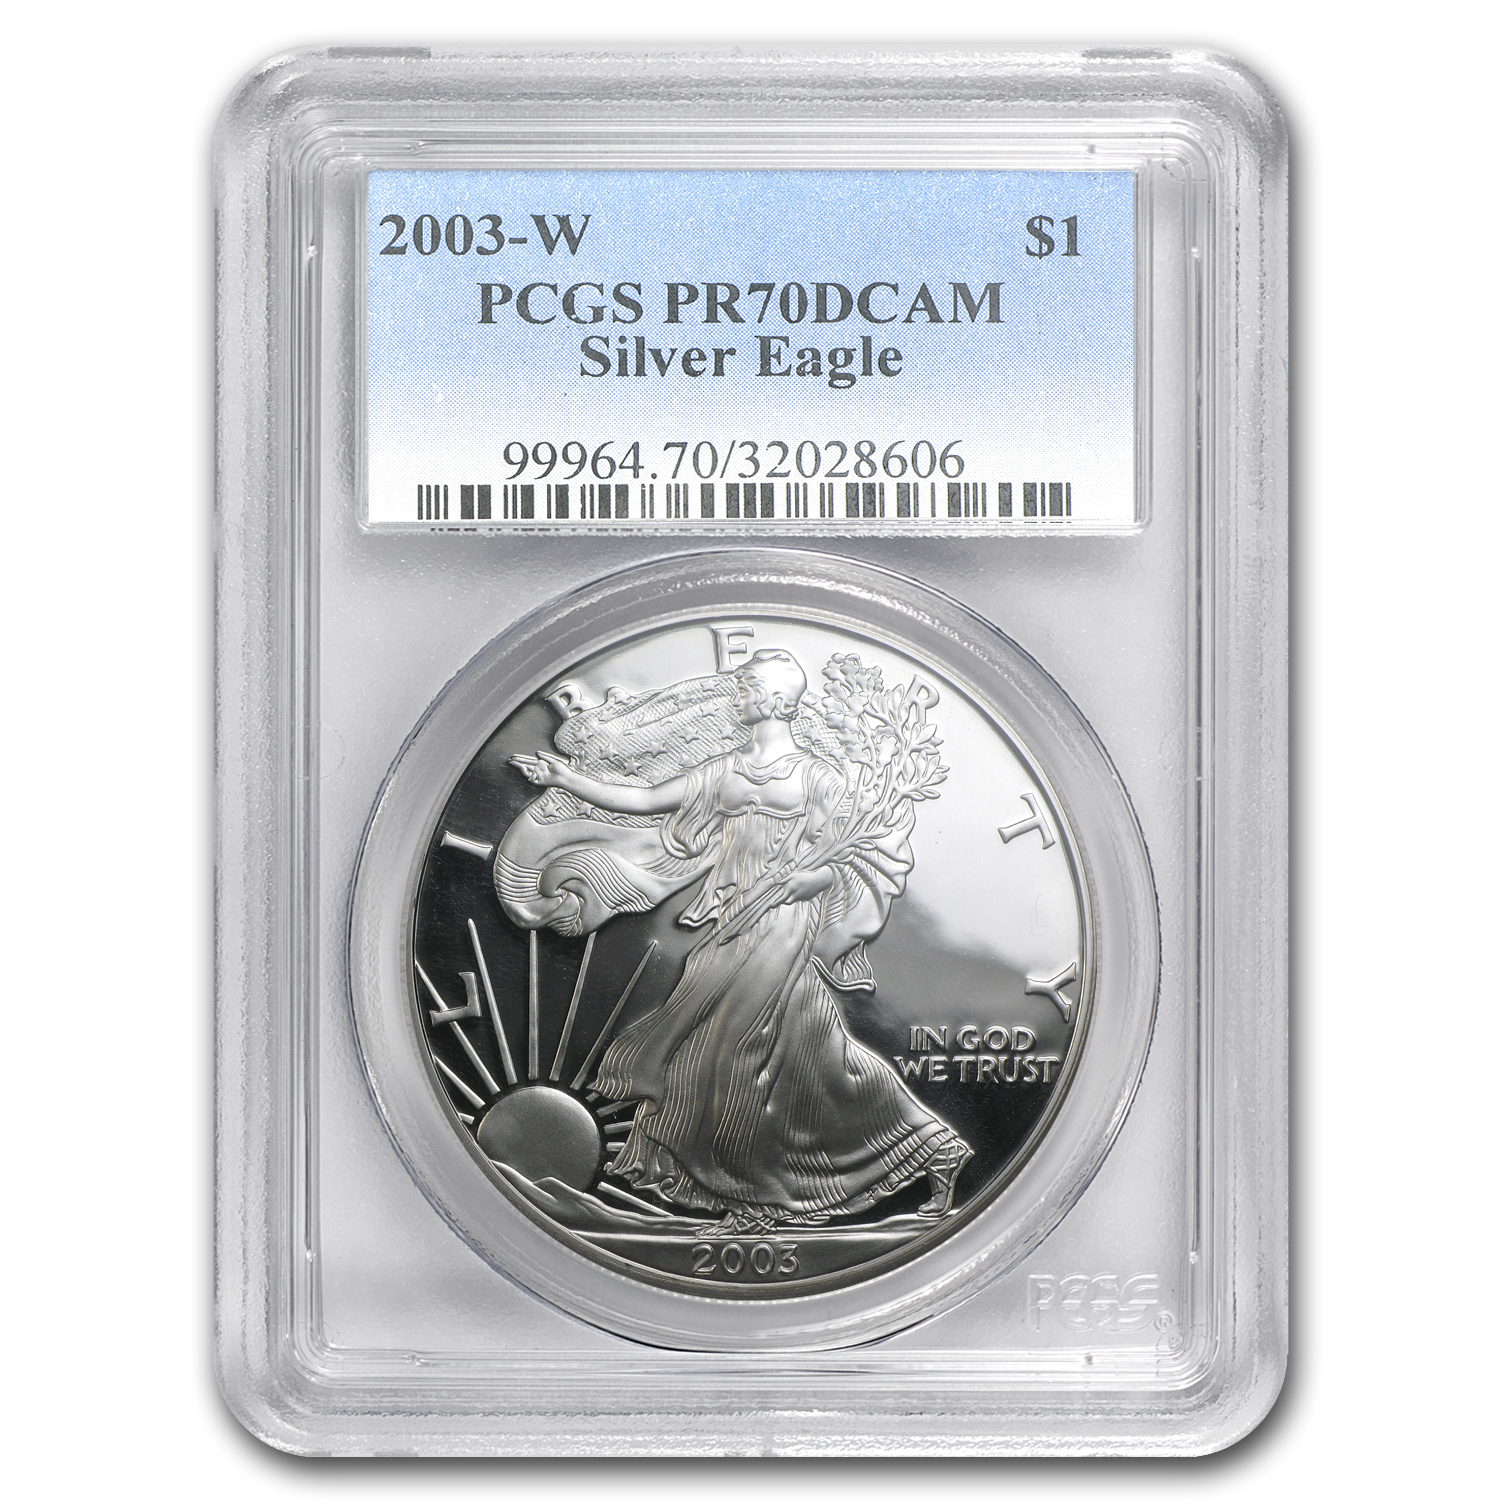 2003-W Proof Silver American Eagle PR-70 PCGS